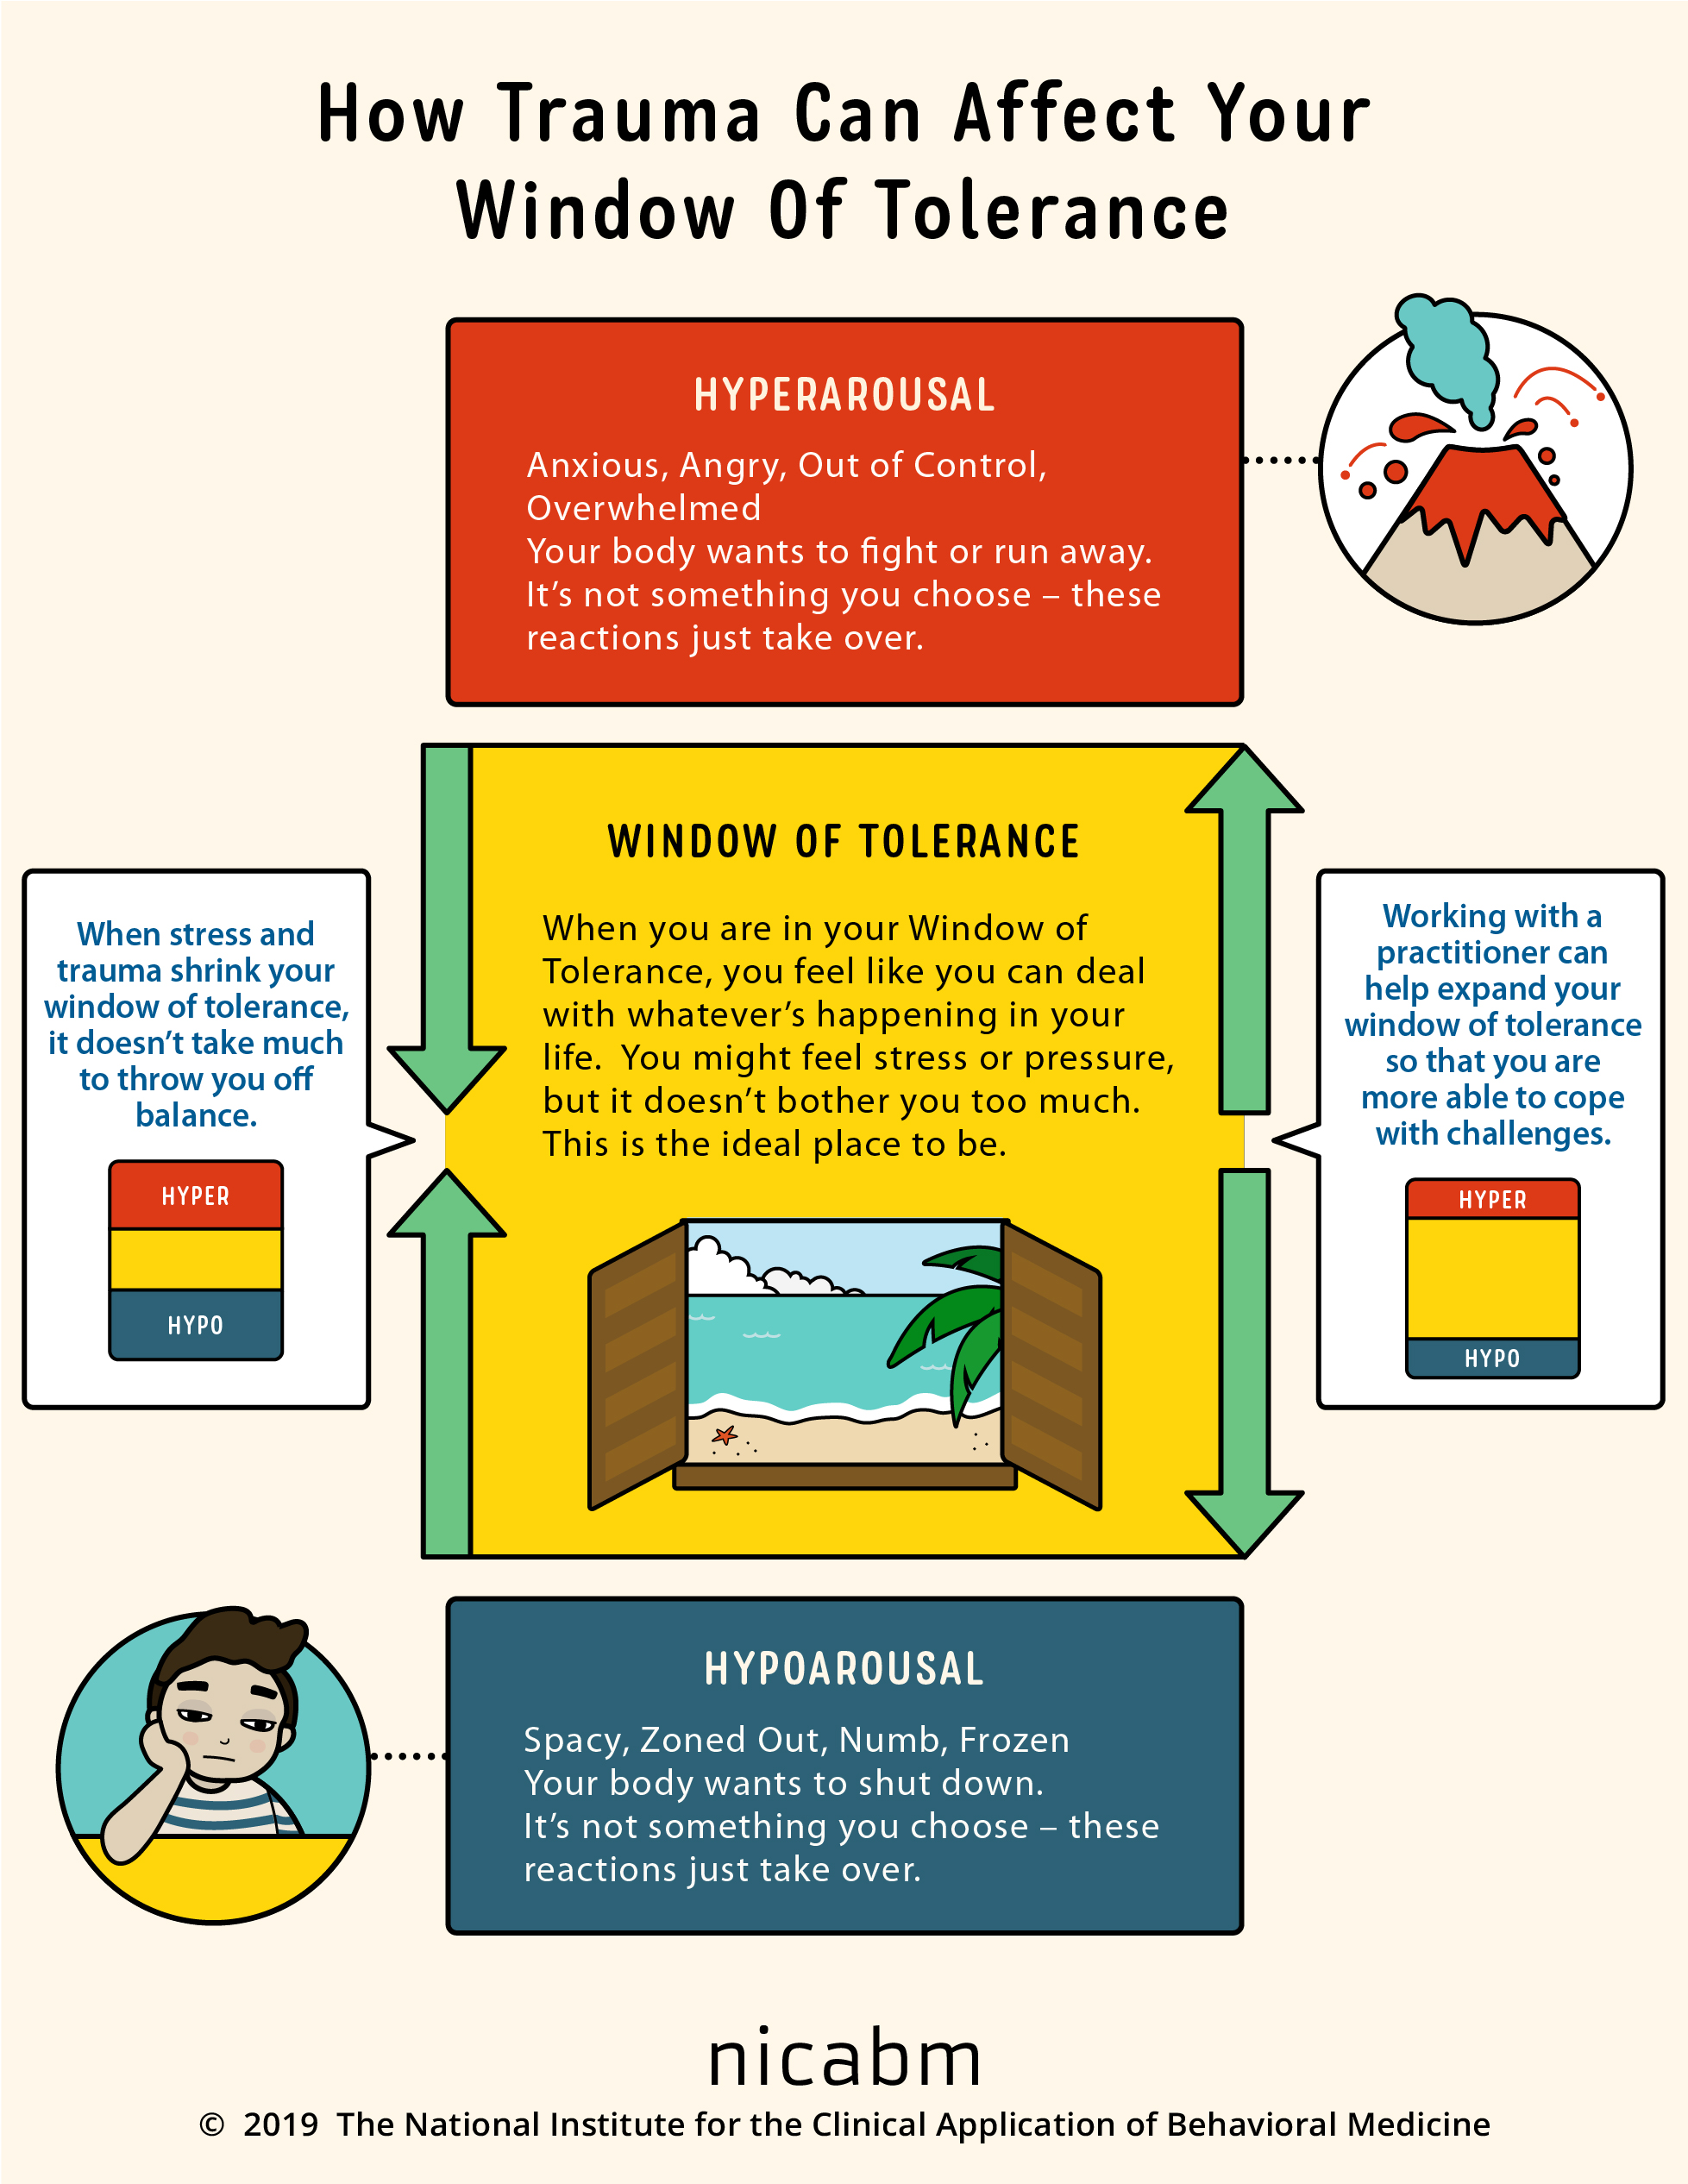 how trauma impacts your window of tolerance infographic